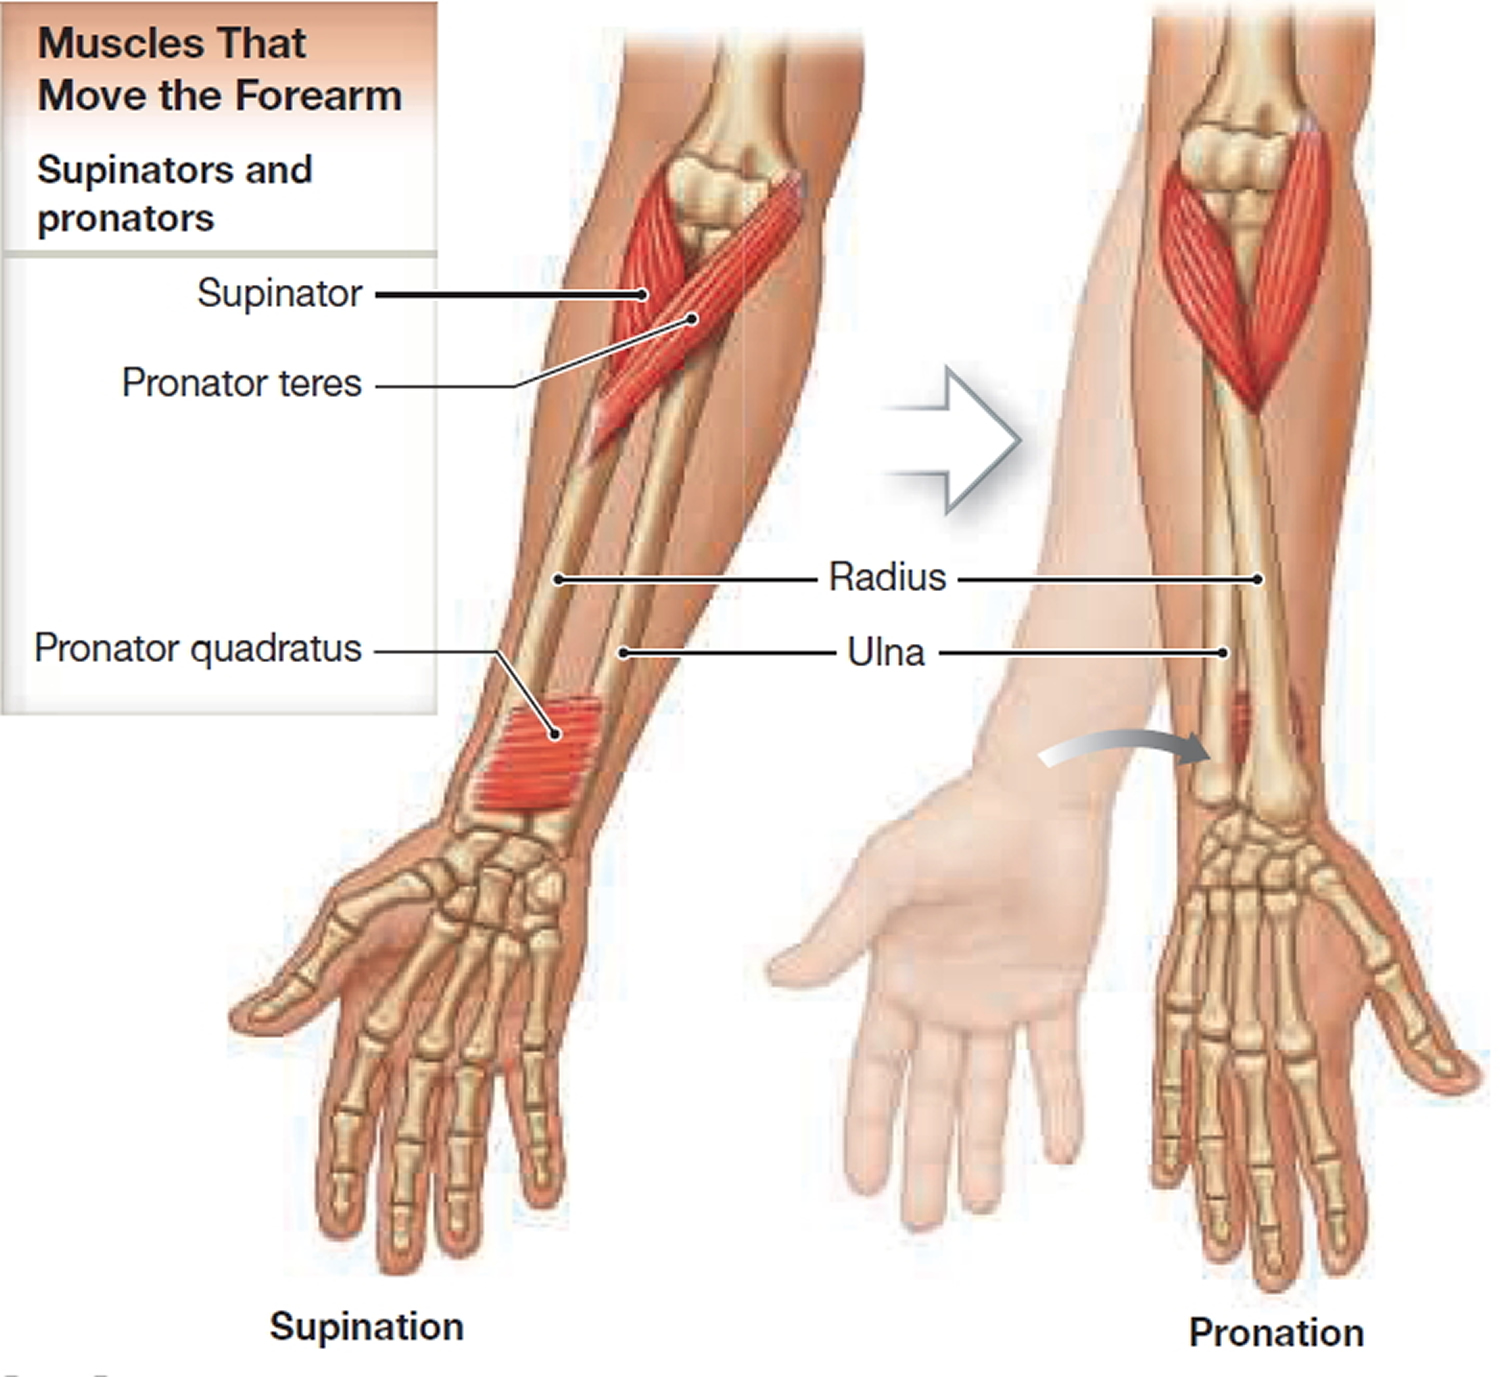 muscles that pronate and supinate the forearm